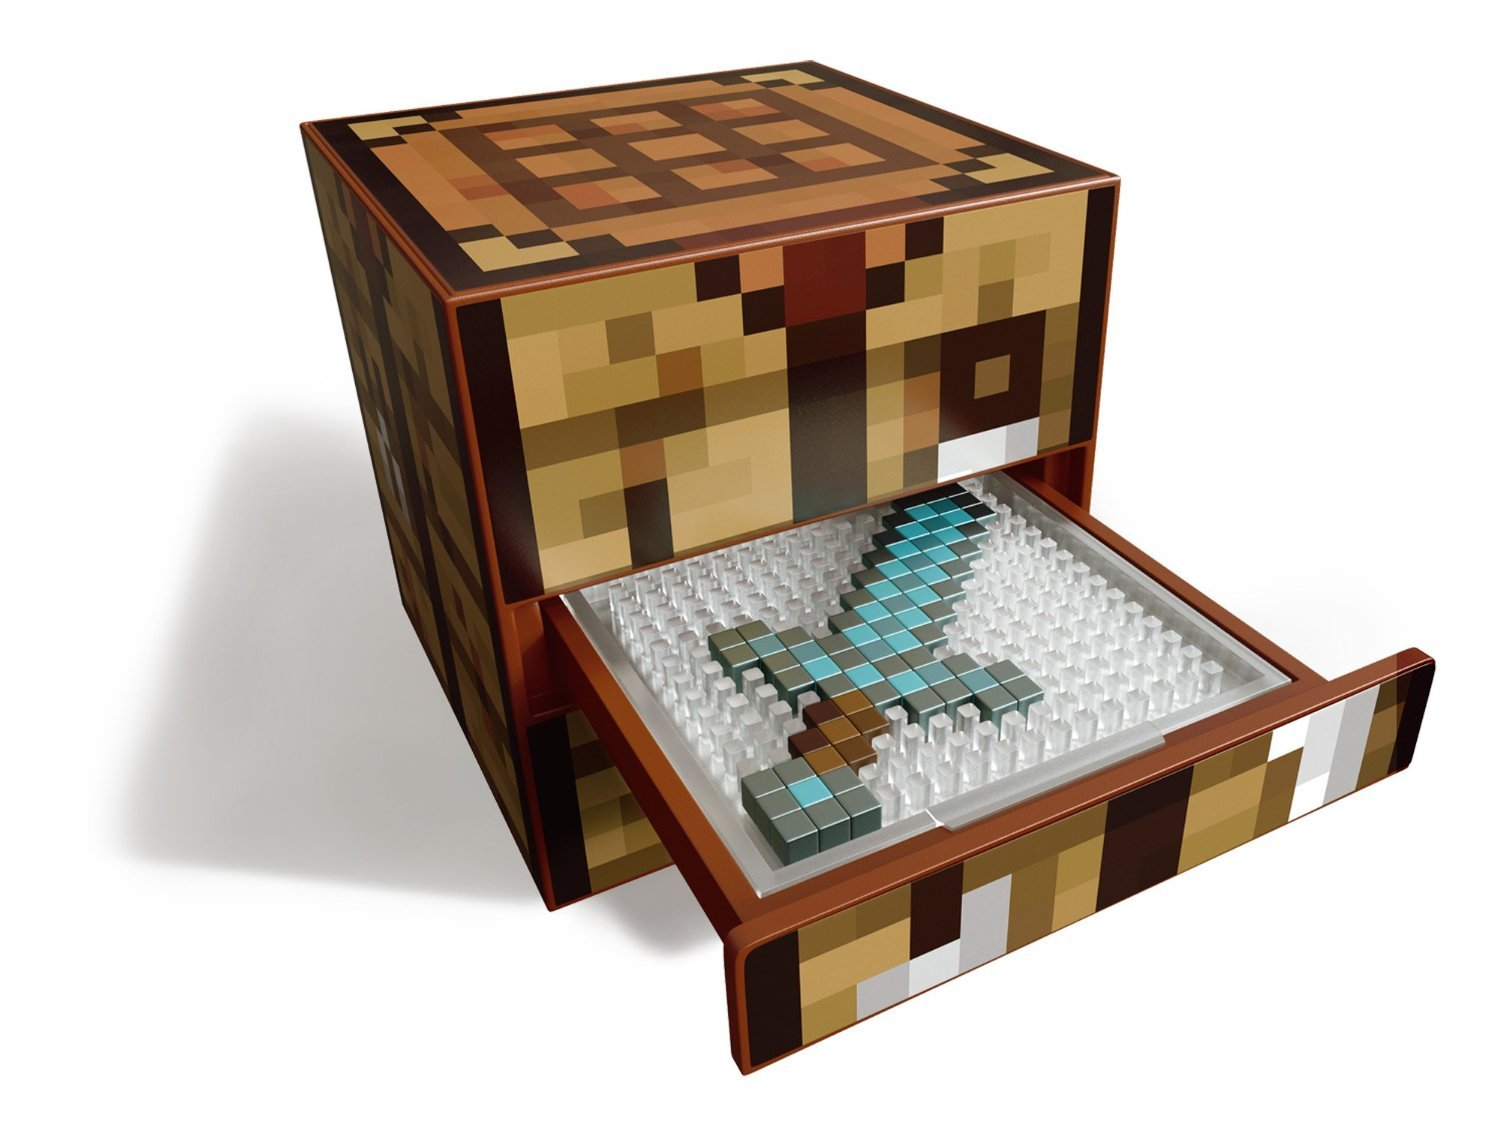 minecraft crafting table playset toy at mighty ape nz